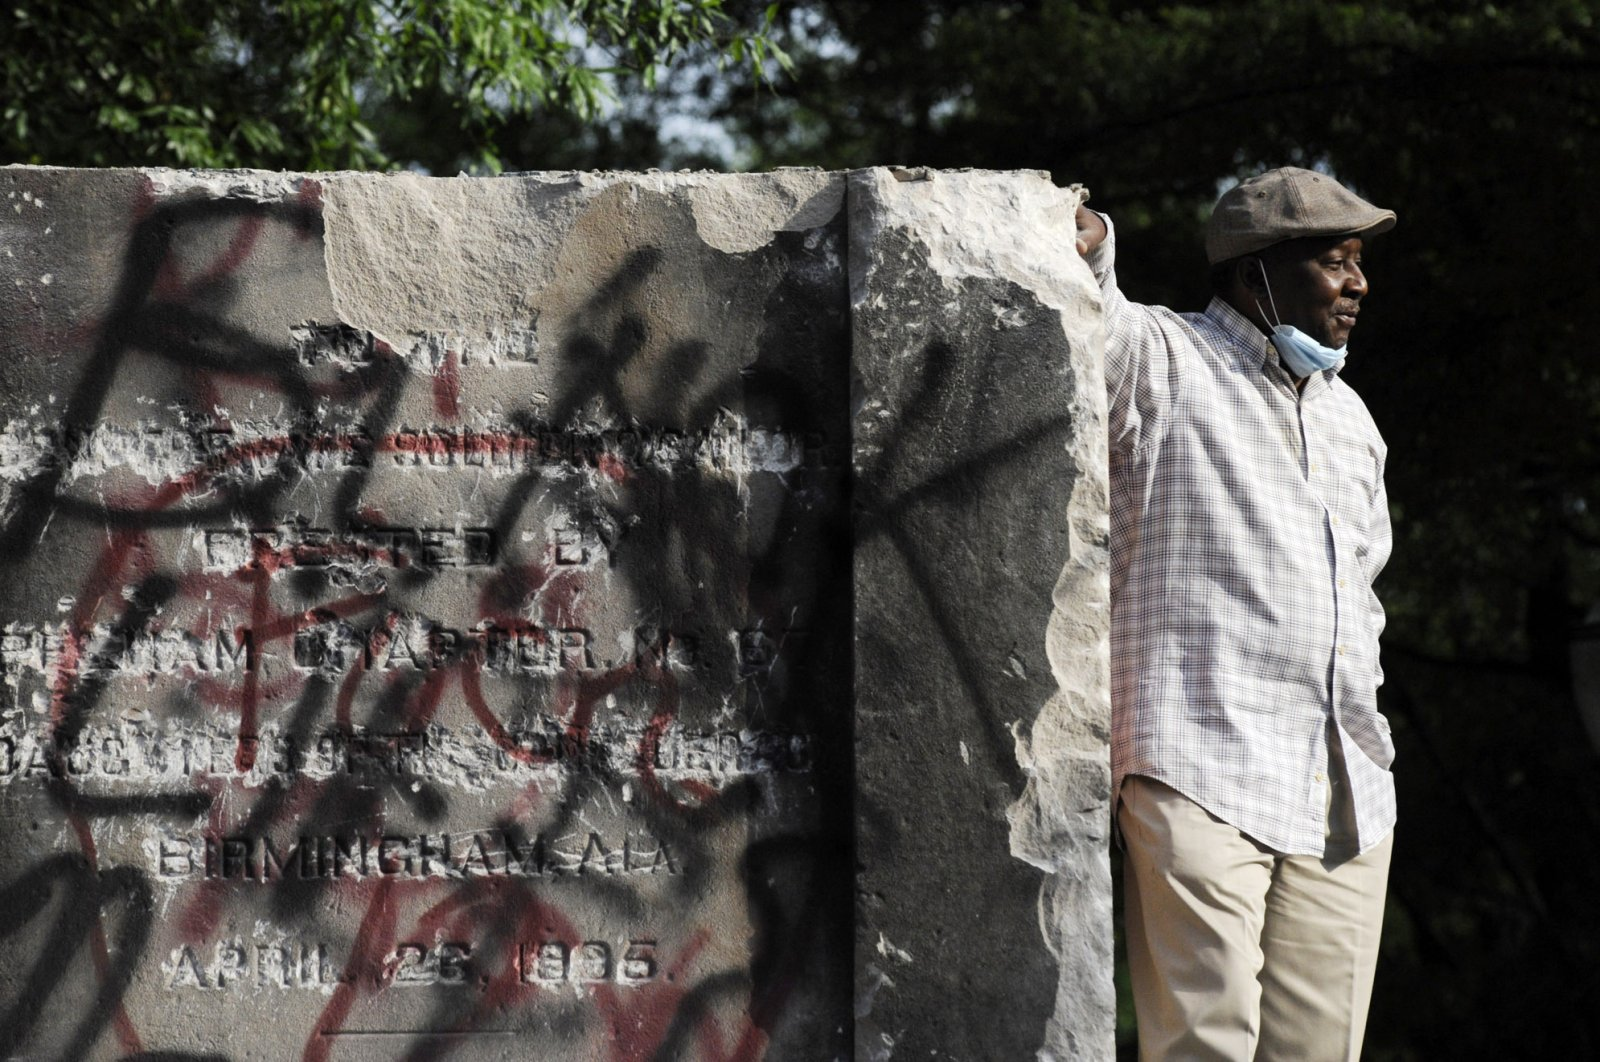 Robert Walker poses for a photograph on the remains of a Confederate memorial that was removed overnight in Birmingham, Ala., Tuesday, June 2, 2020. (AP Photo)